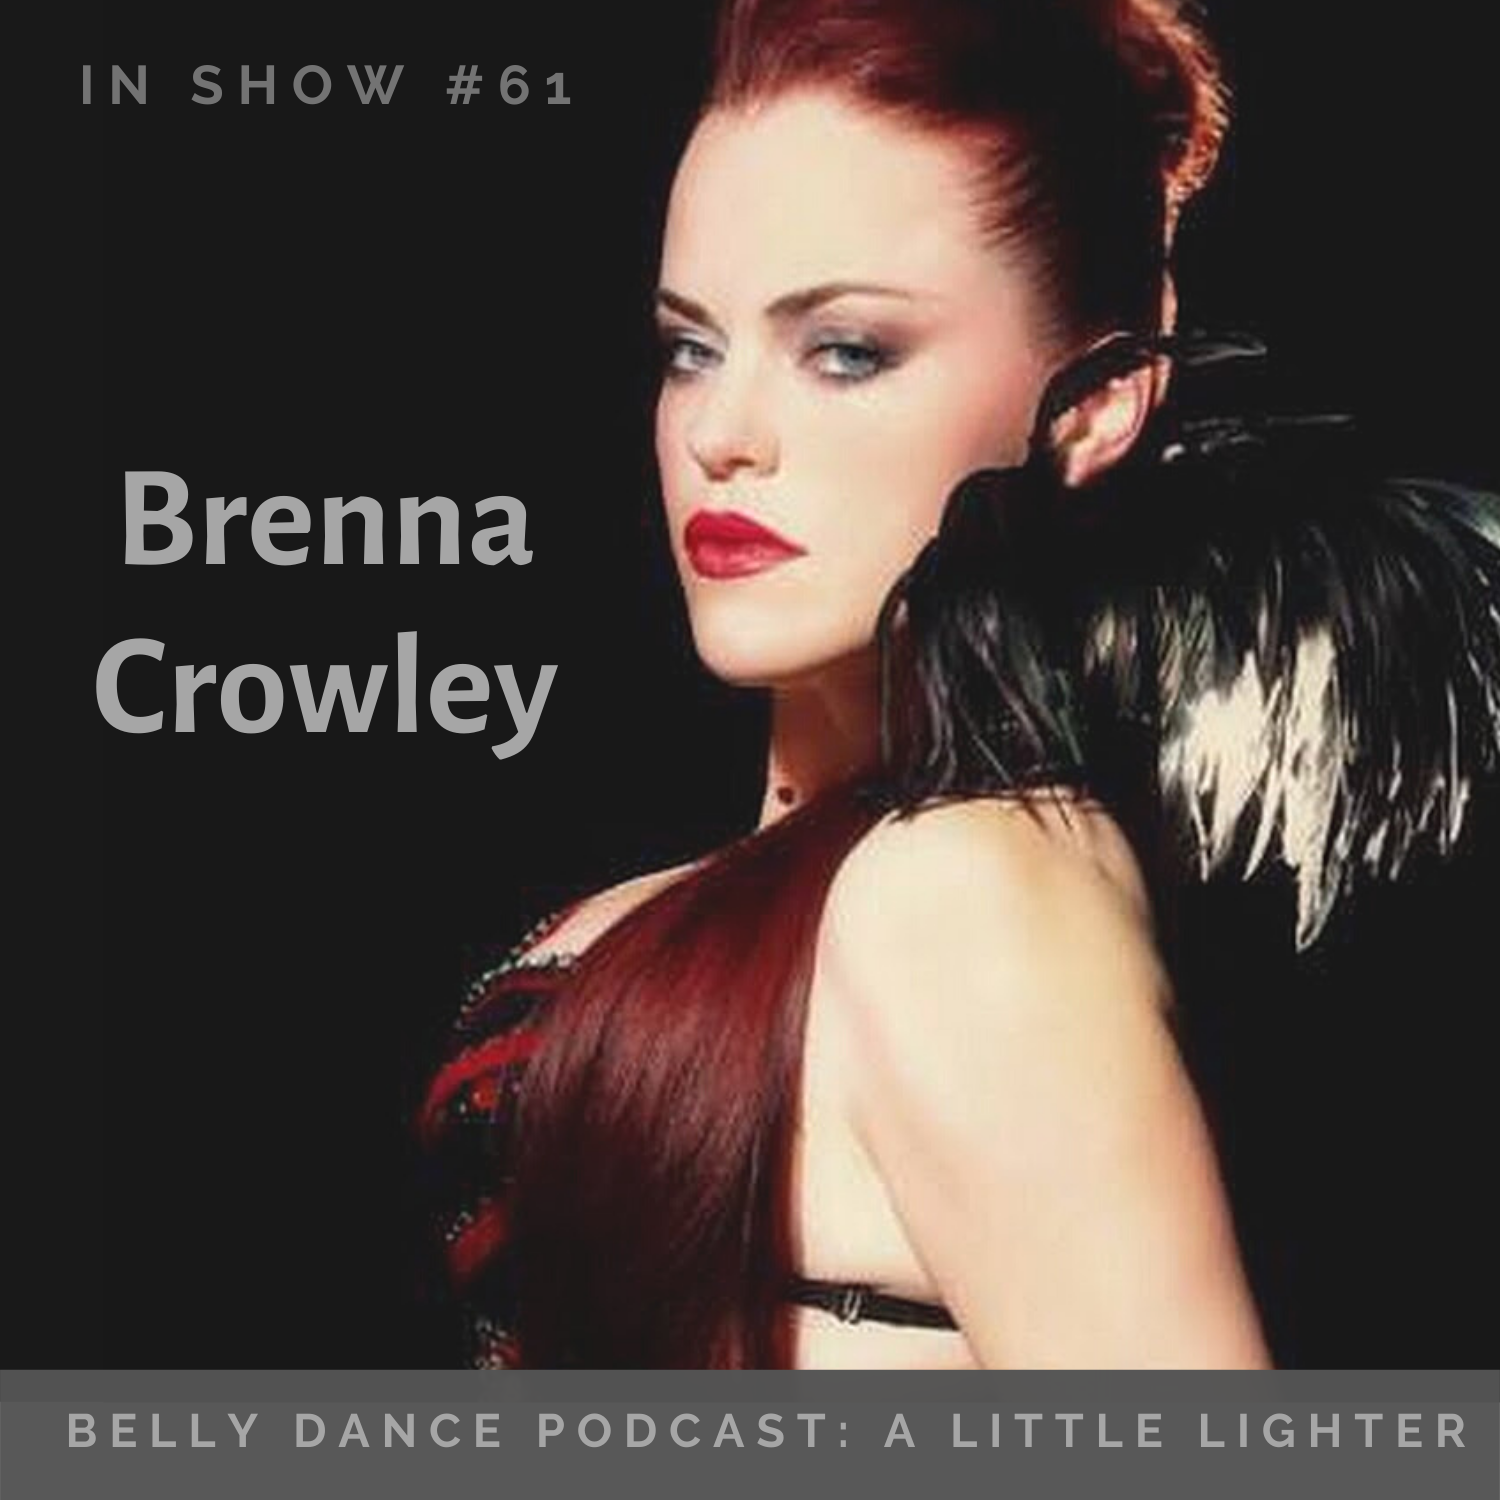 Belly-Dance-Podcast-061-Brenna-Crowley-Cover